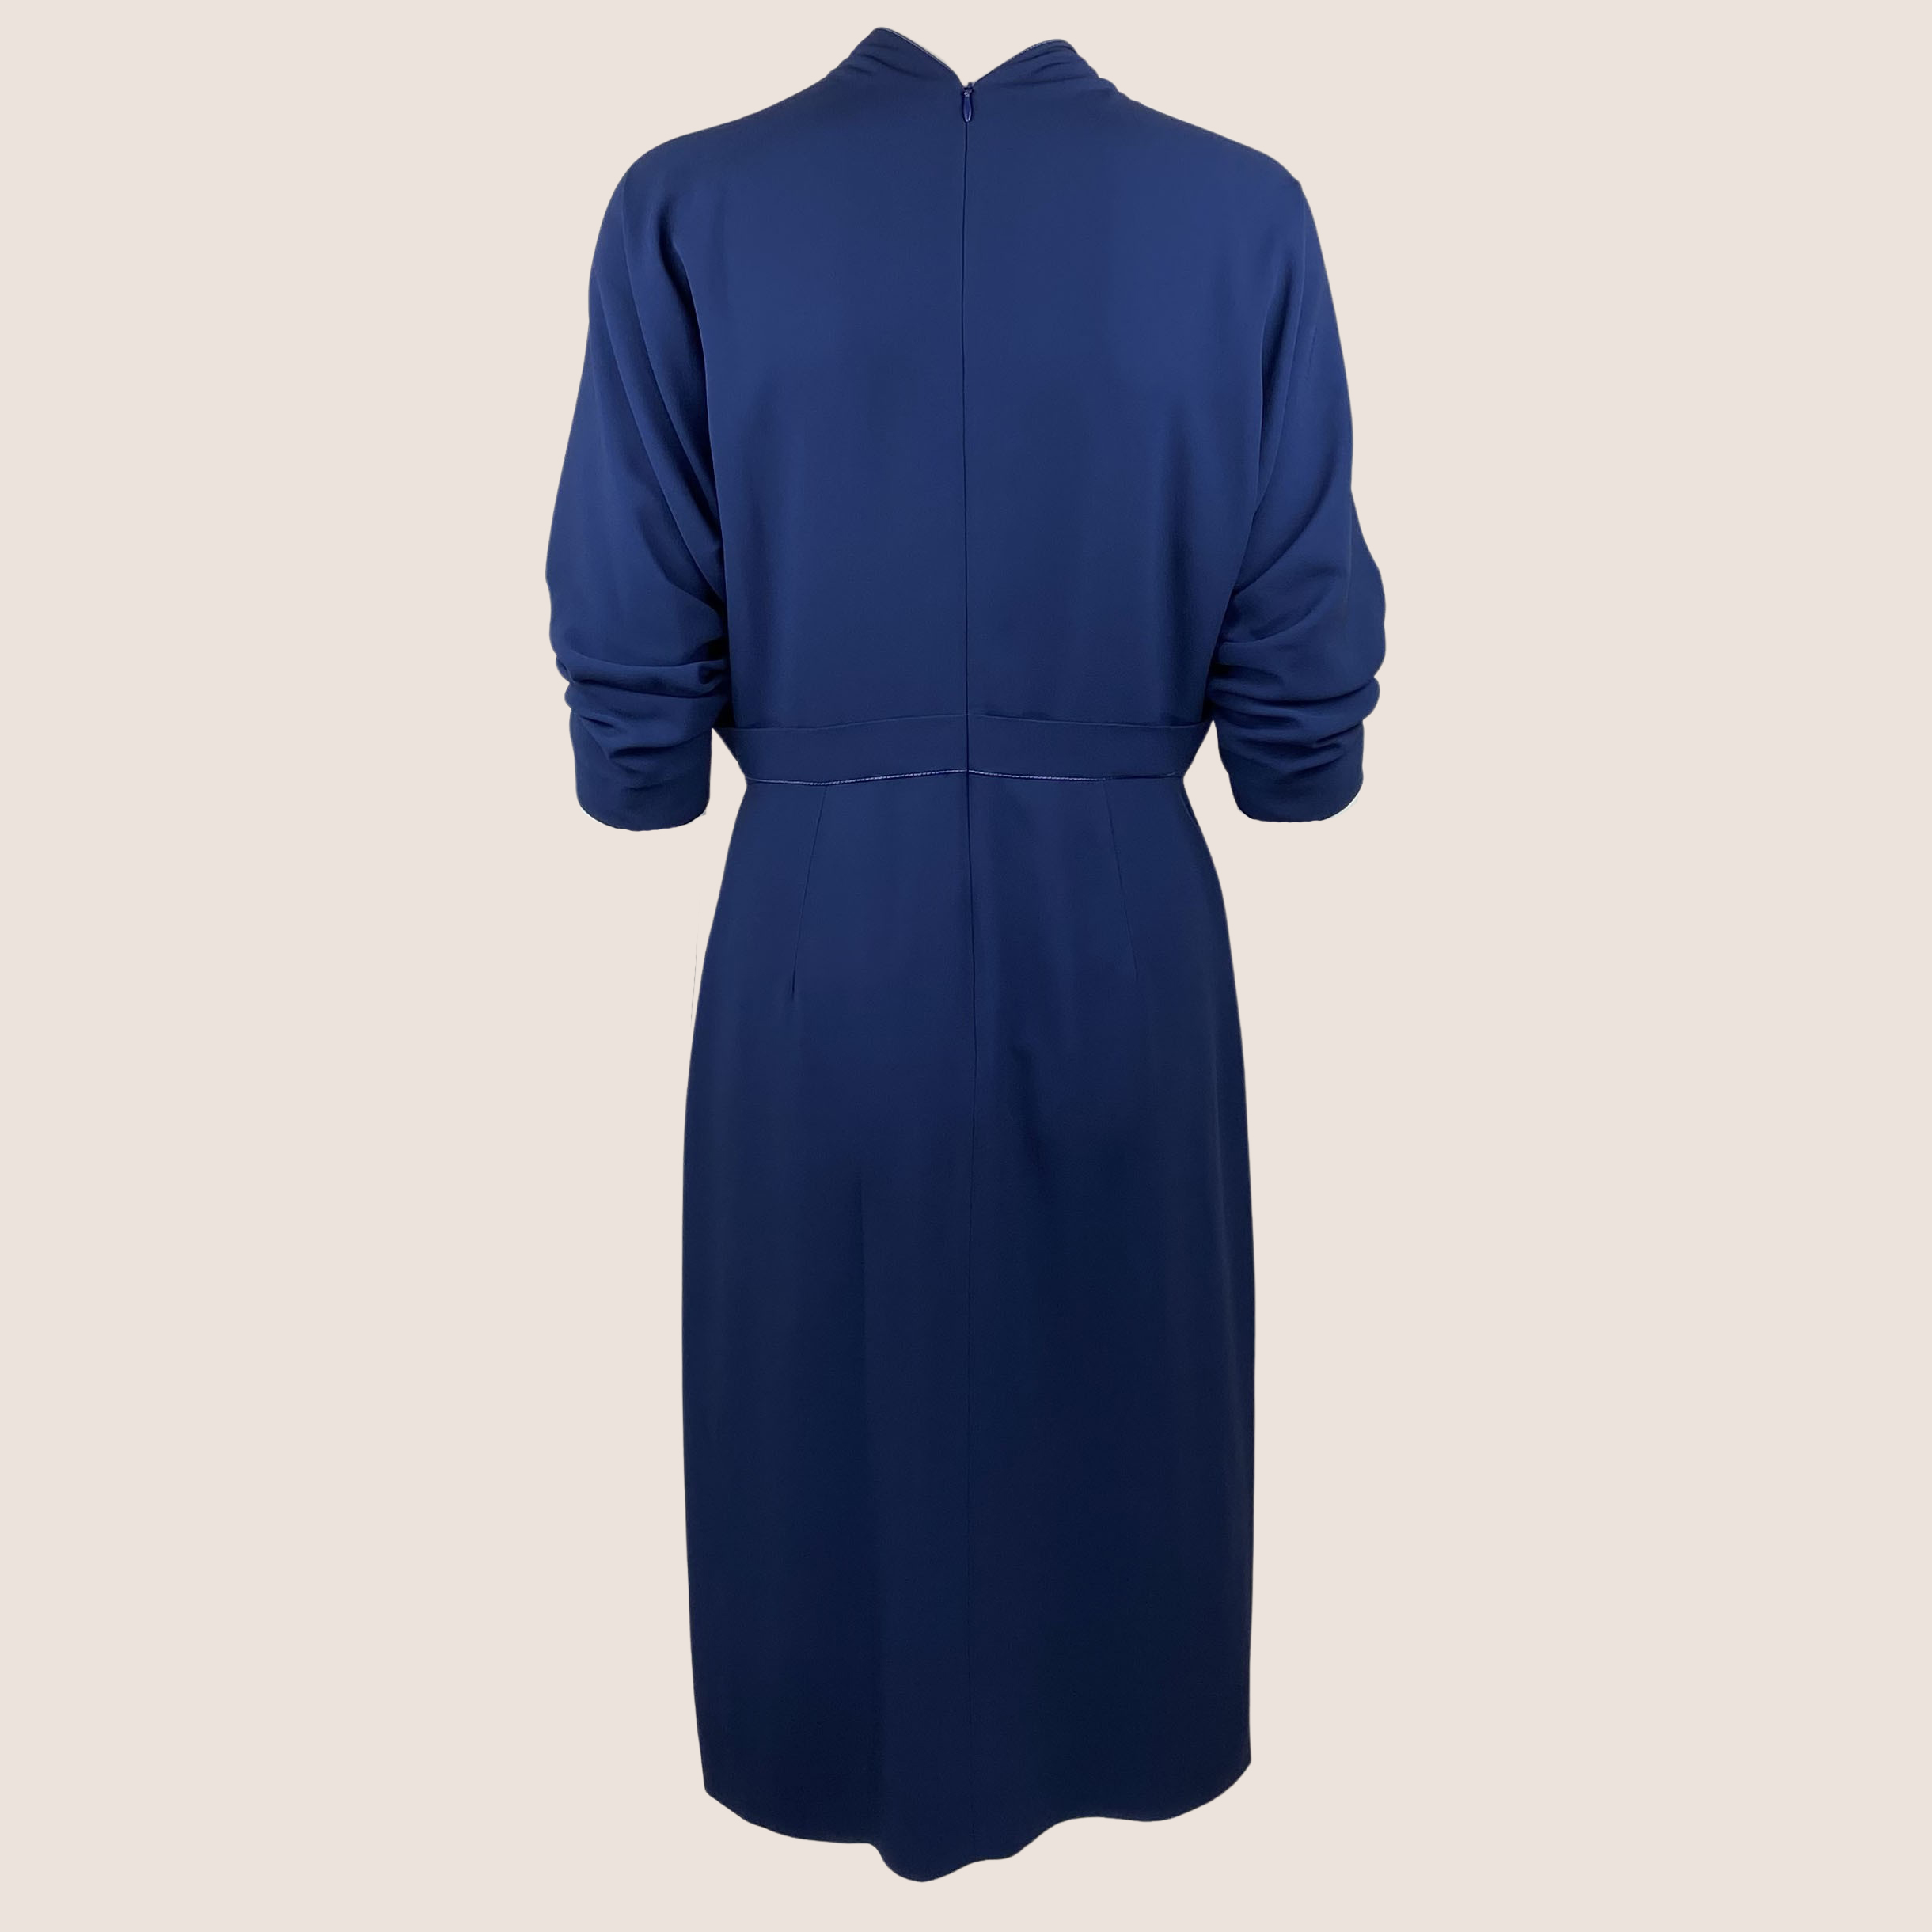 Navy Dress With Bow